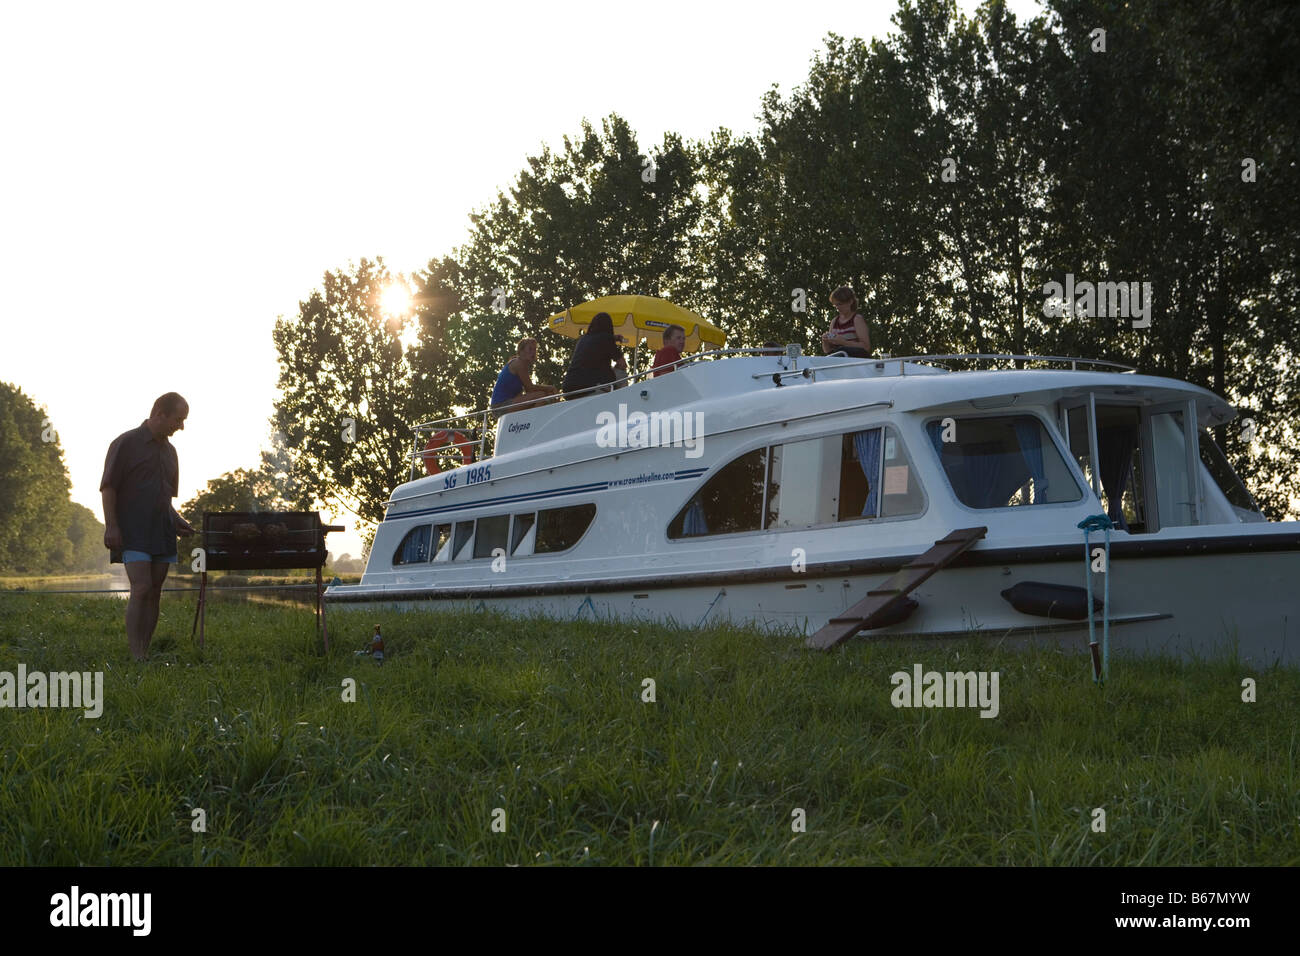 La Grille Canal Calypso Boat Stock Photos And Calypso Boat Stock Images Alamy